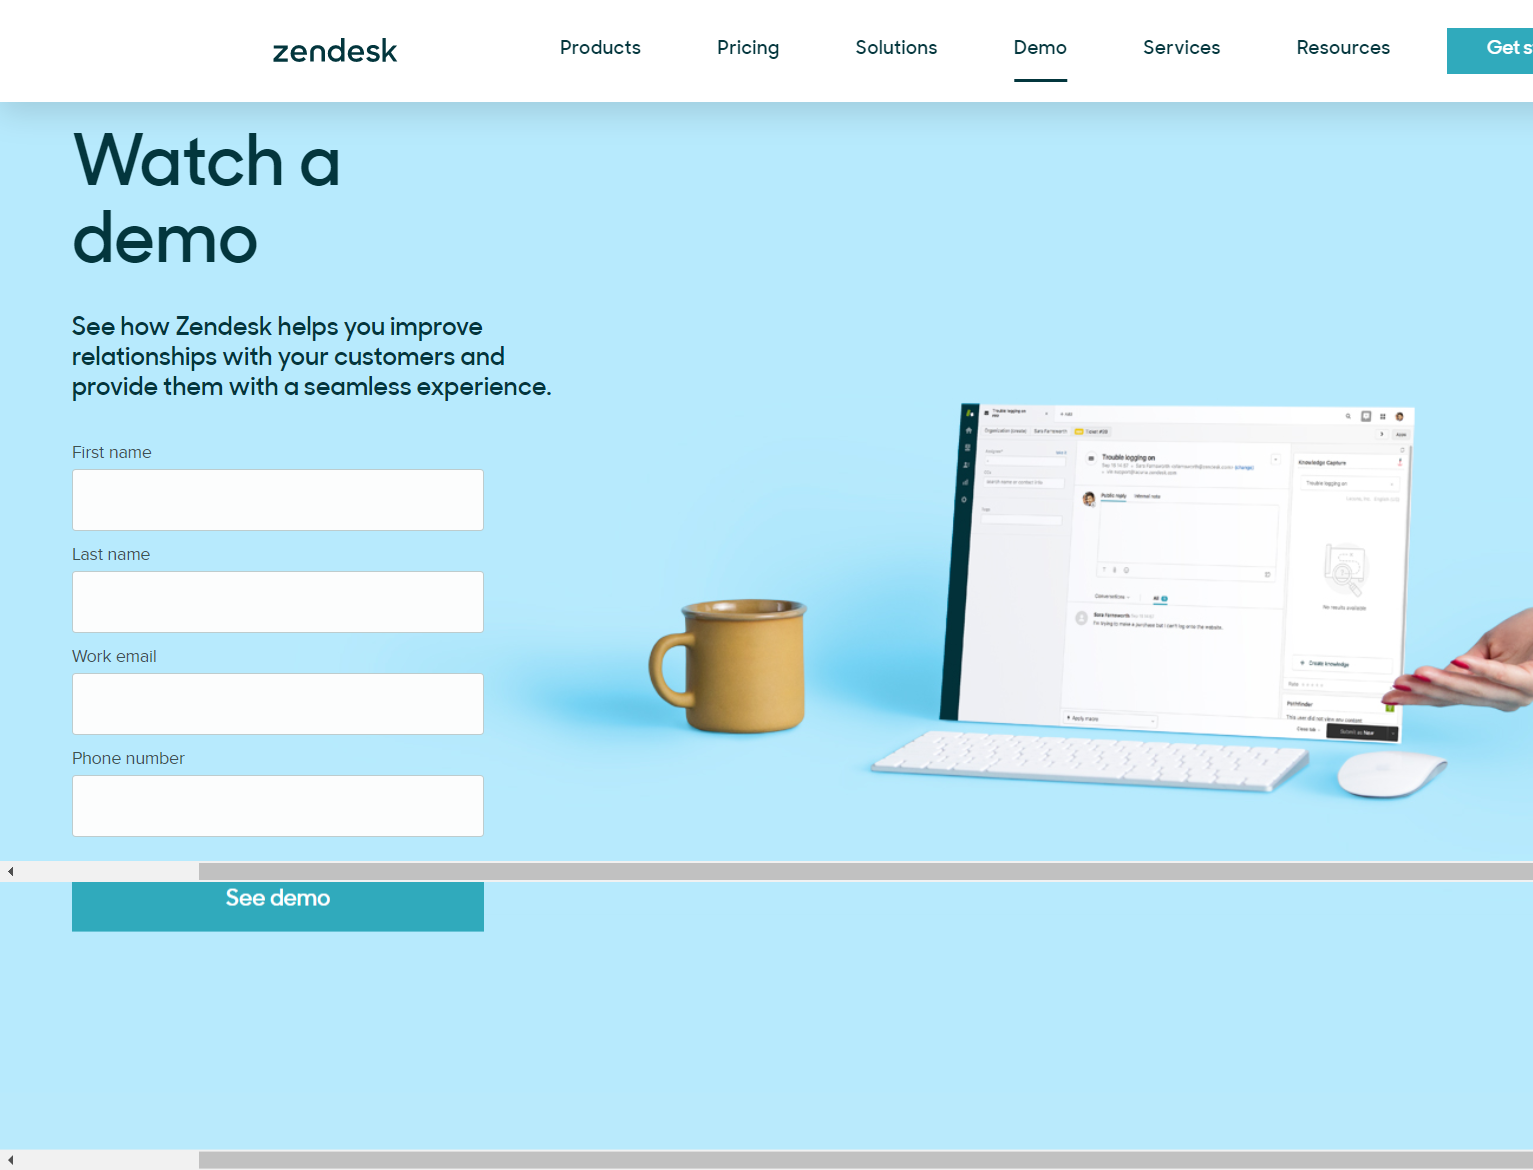 A high converting landing page keeps things simple, like this example from Zendesk